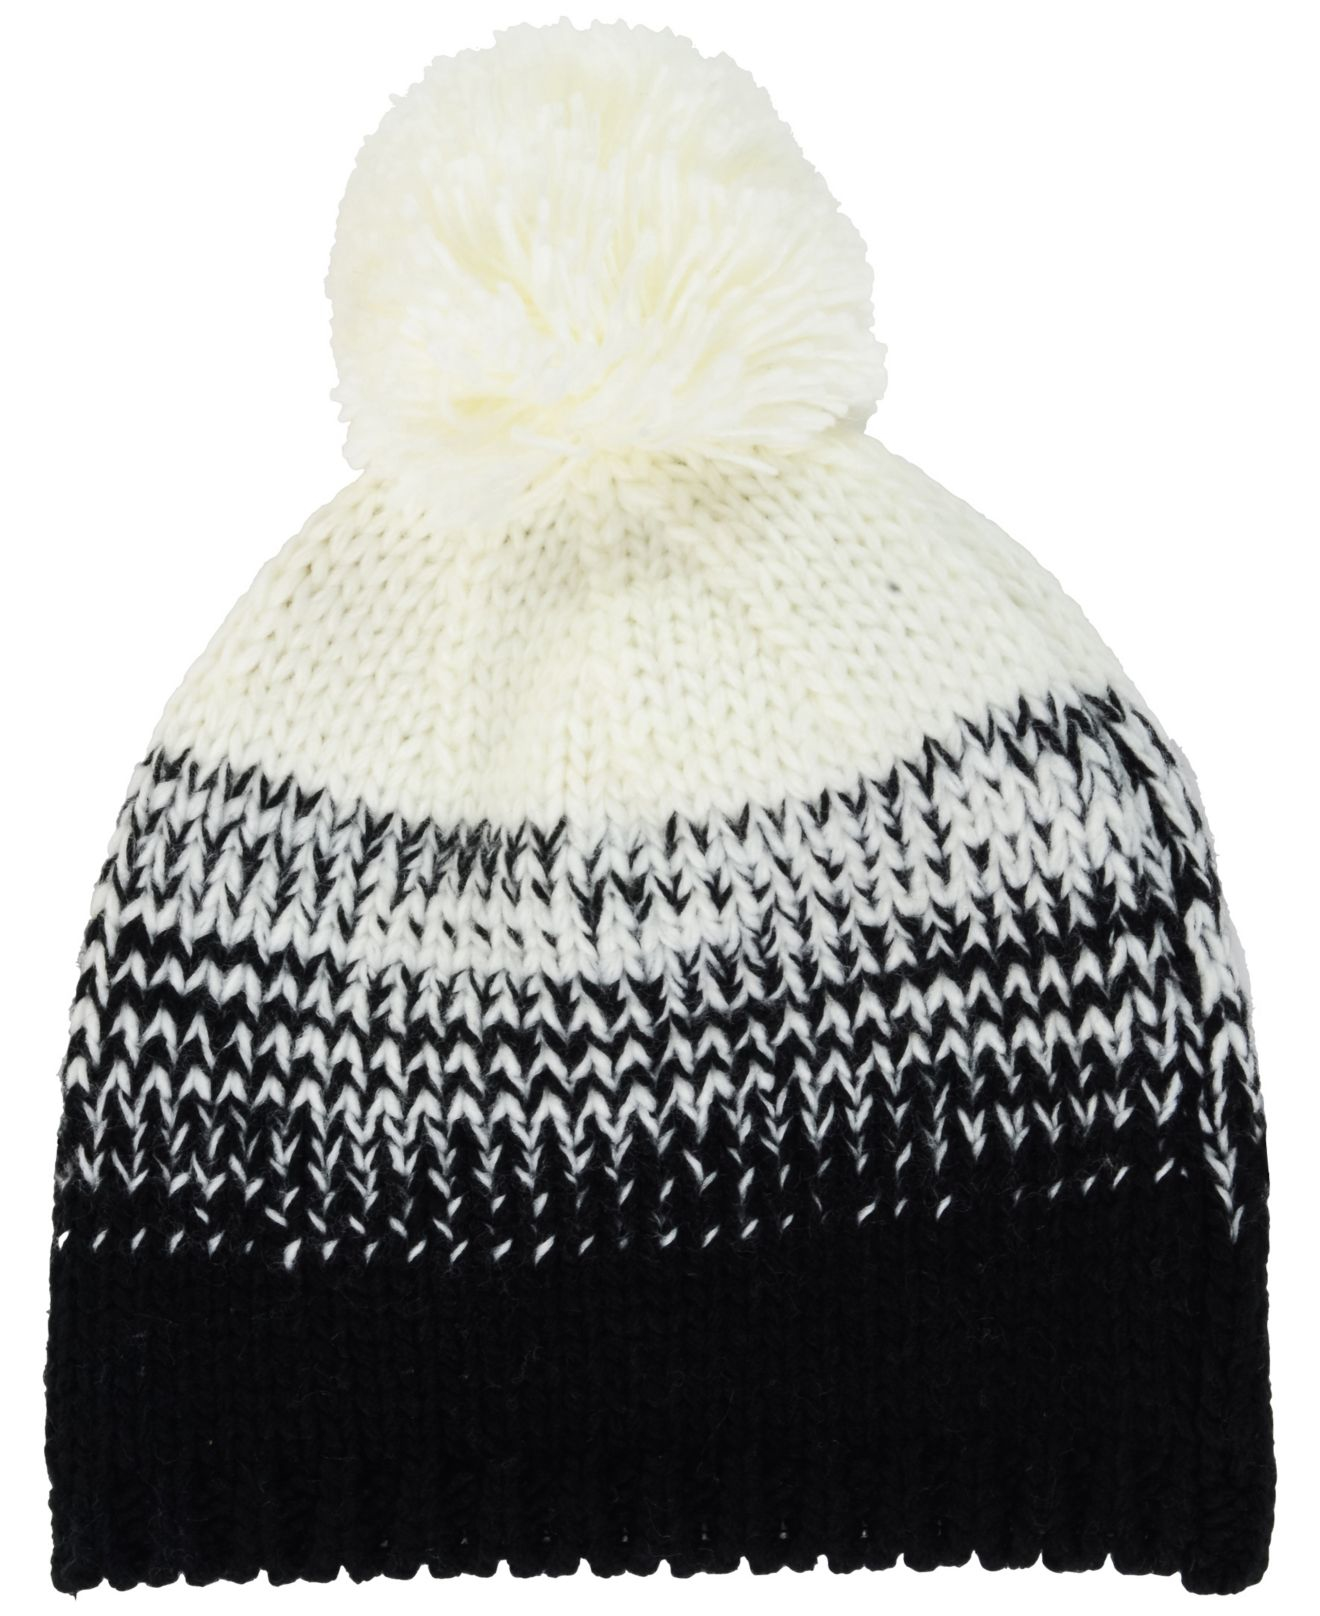 Lyst - Ktz Women s Jacksonville Jaguars Polar Dust Knit Hat in Black 3916e4c45